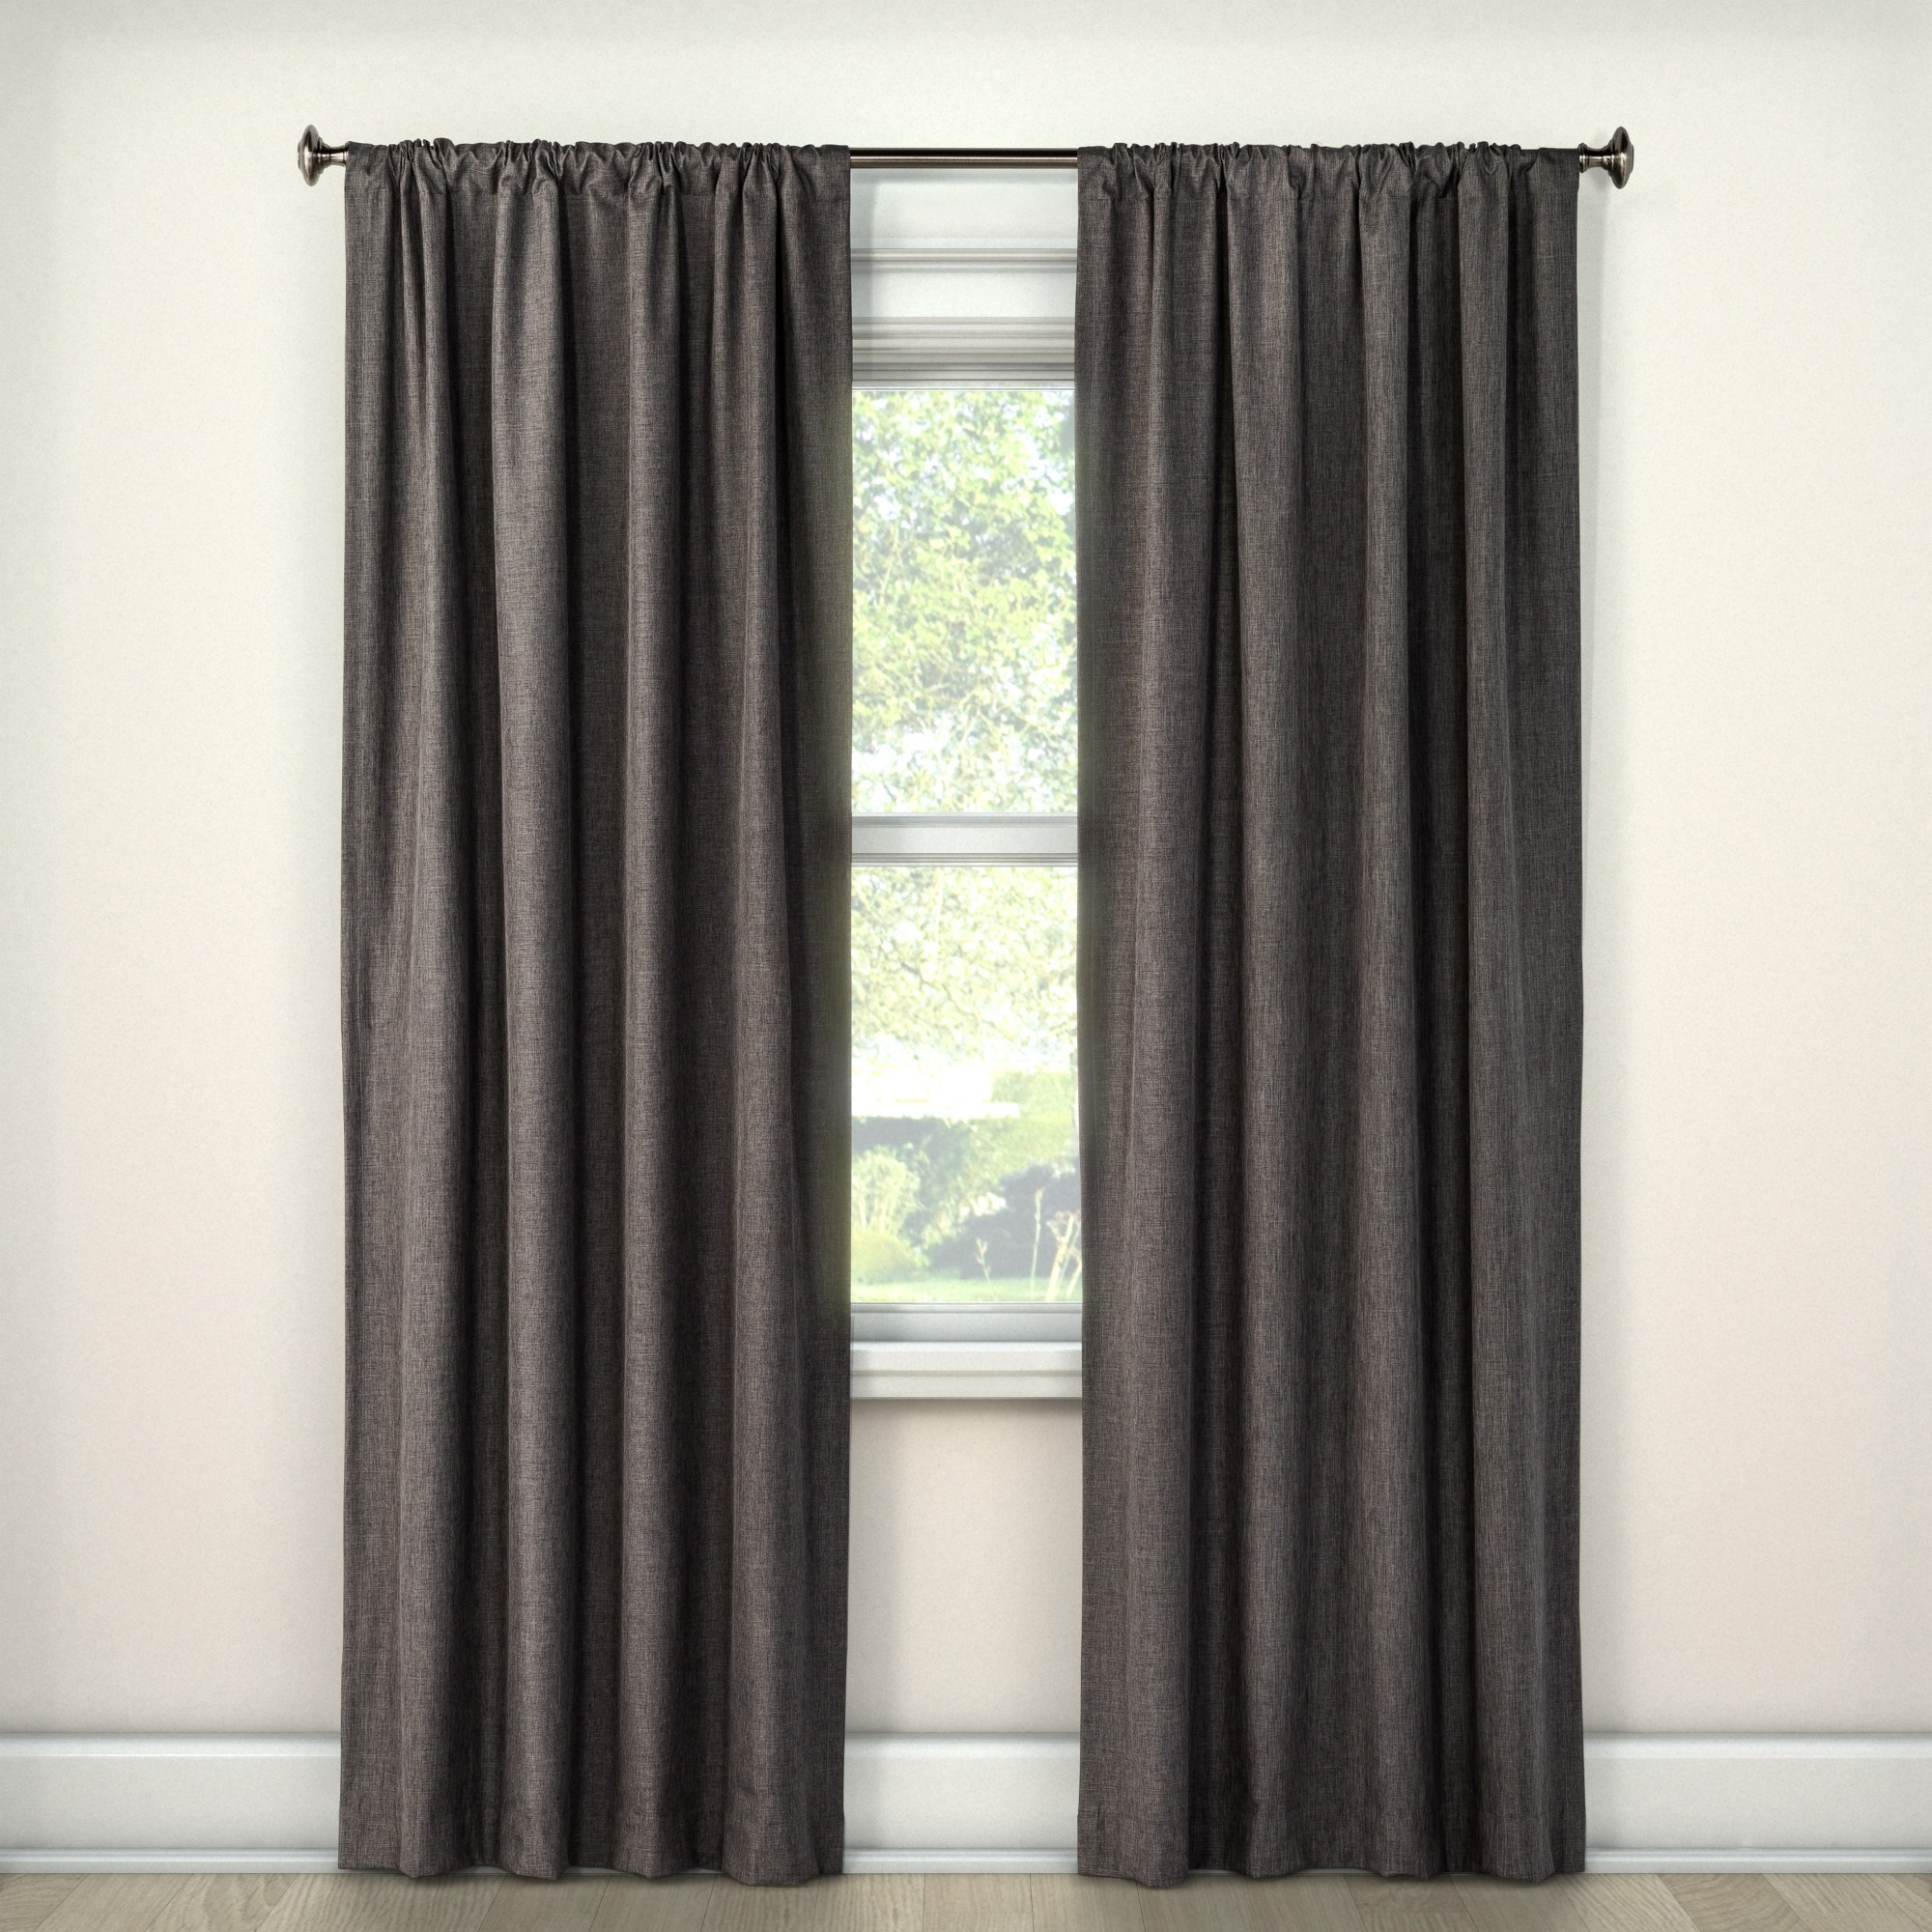 63 X42 Heathered Thermal Room Darkening Curtain Panel Dark Gray Room Essentials In 2020 Panel Curtains Light Blocking Curtains Solid Curtains